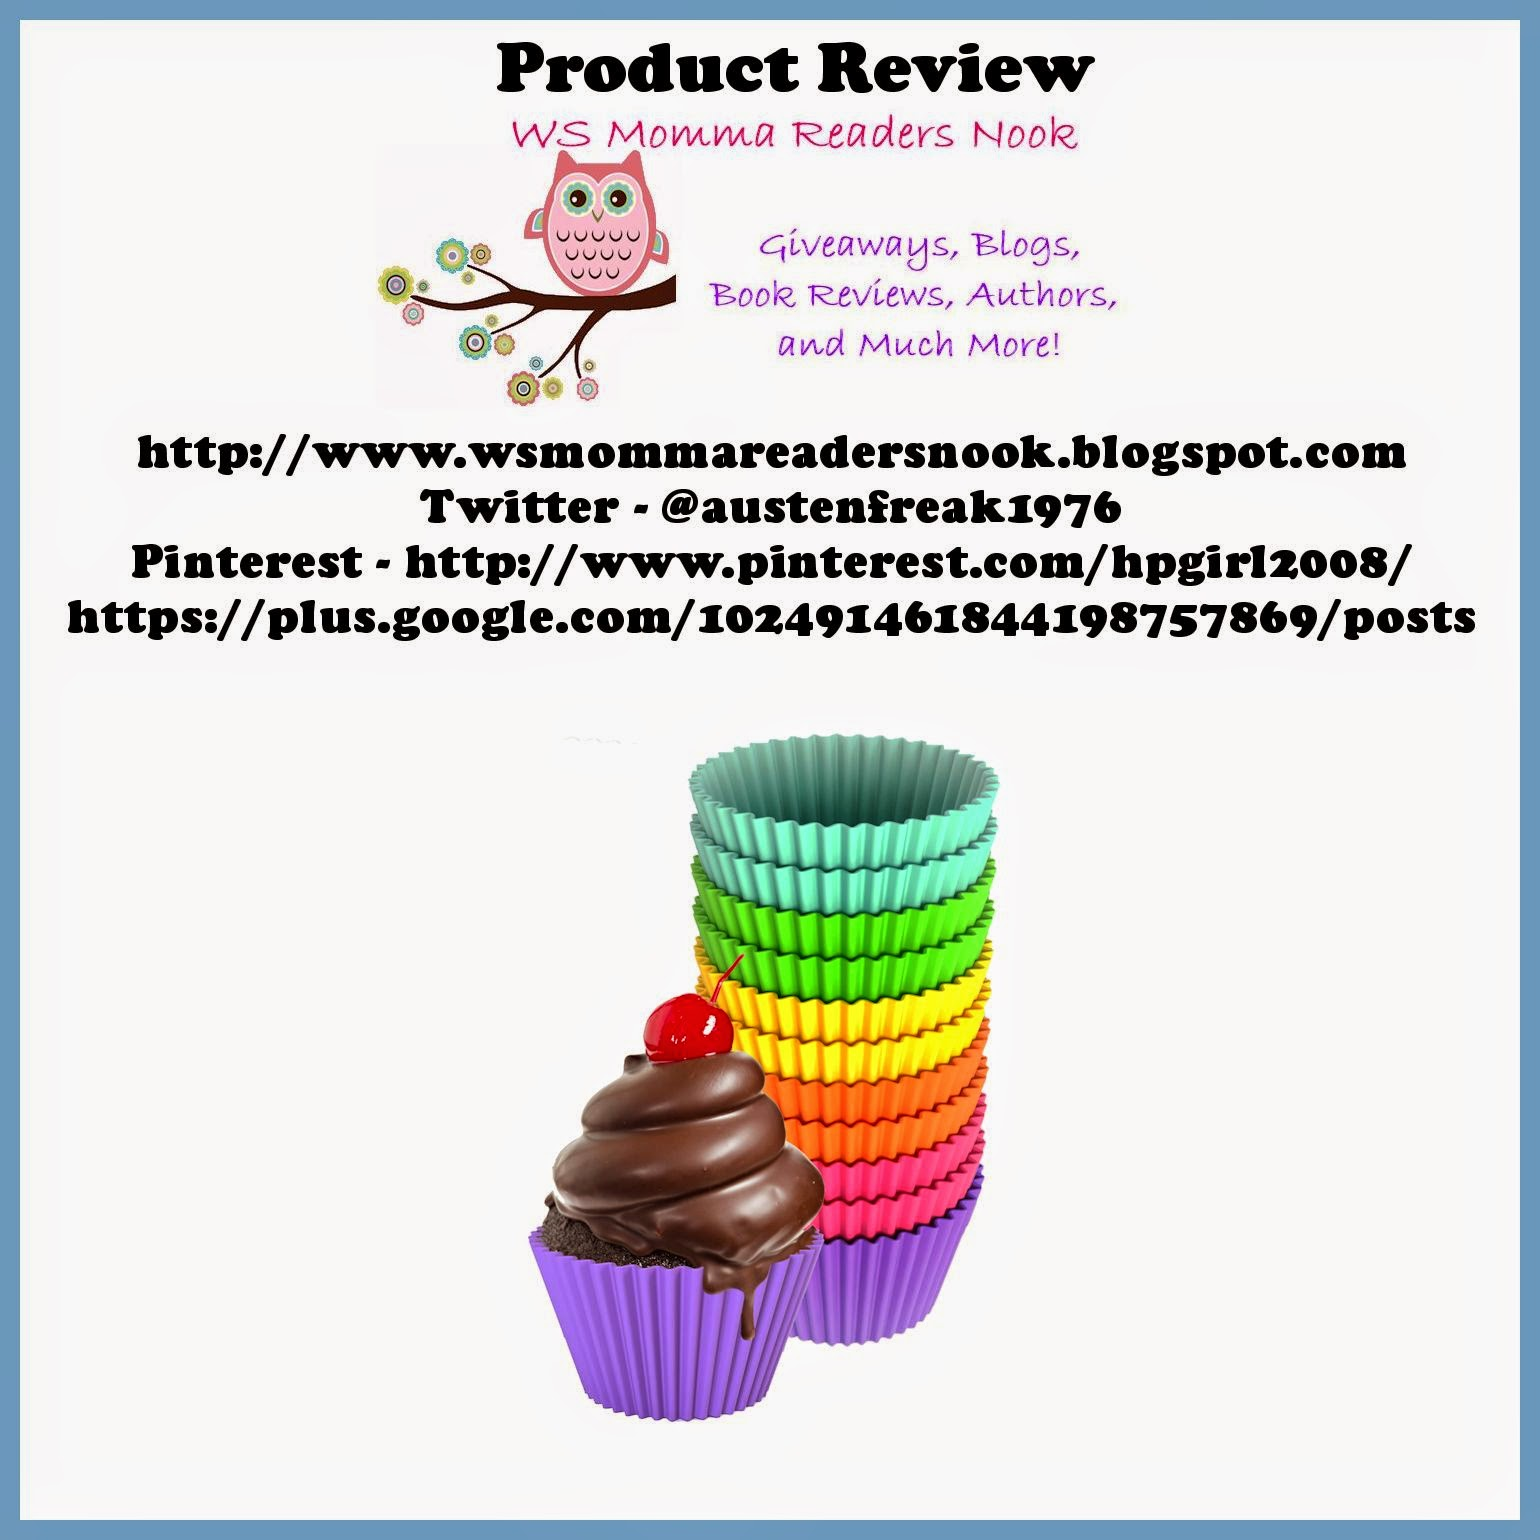 http://www.amazon.com/little-gems-silicone-baking-quality/dp/b00f6fijo8/